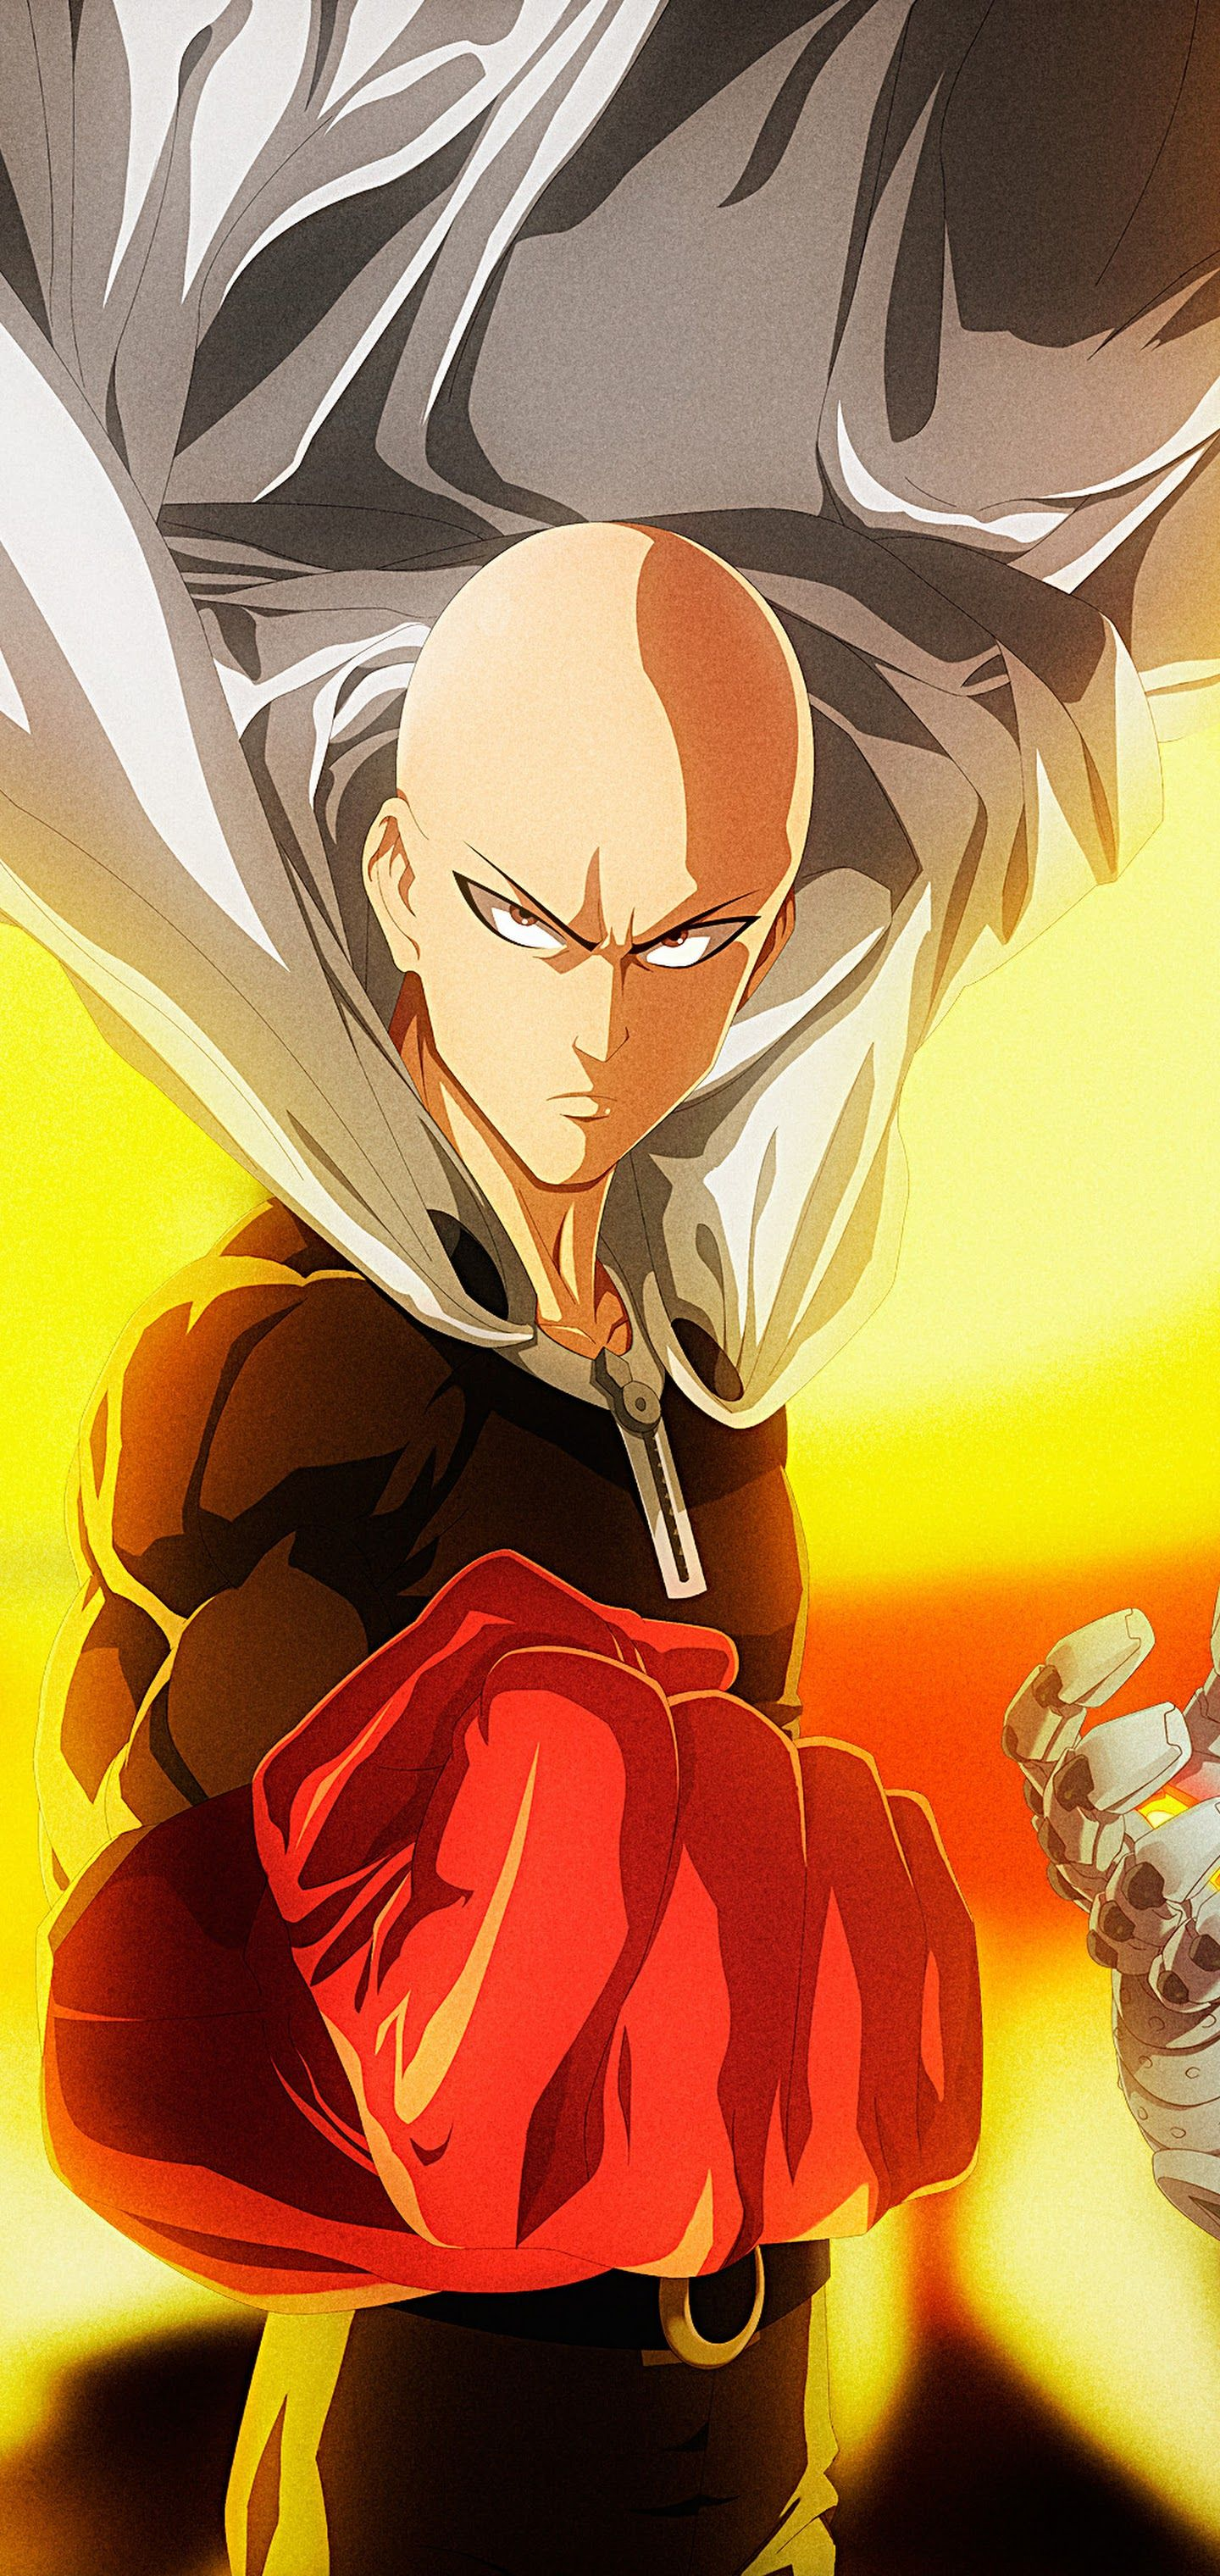 One Punch Man Wallpaper Iphone 4 One Punch Man Saitama Sonic Genos 4k Wallpaper 112 One Punch Man Season 2 W One Punch Cute Pokemon Wallpaper Anime Wallpaper